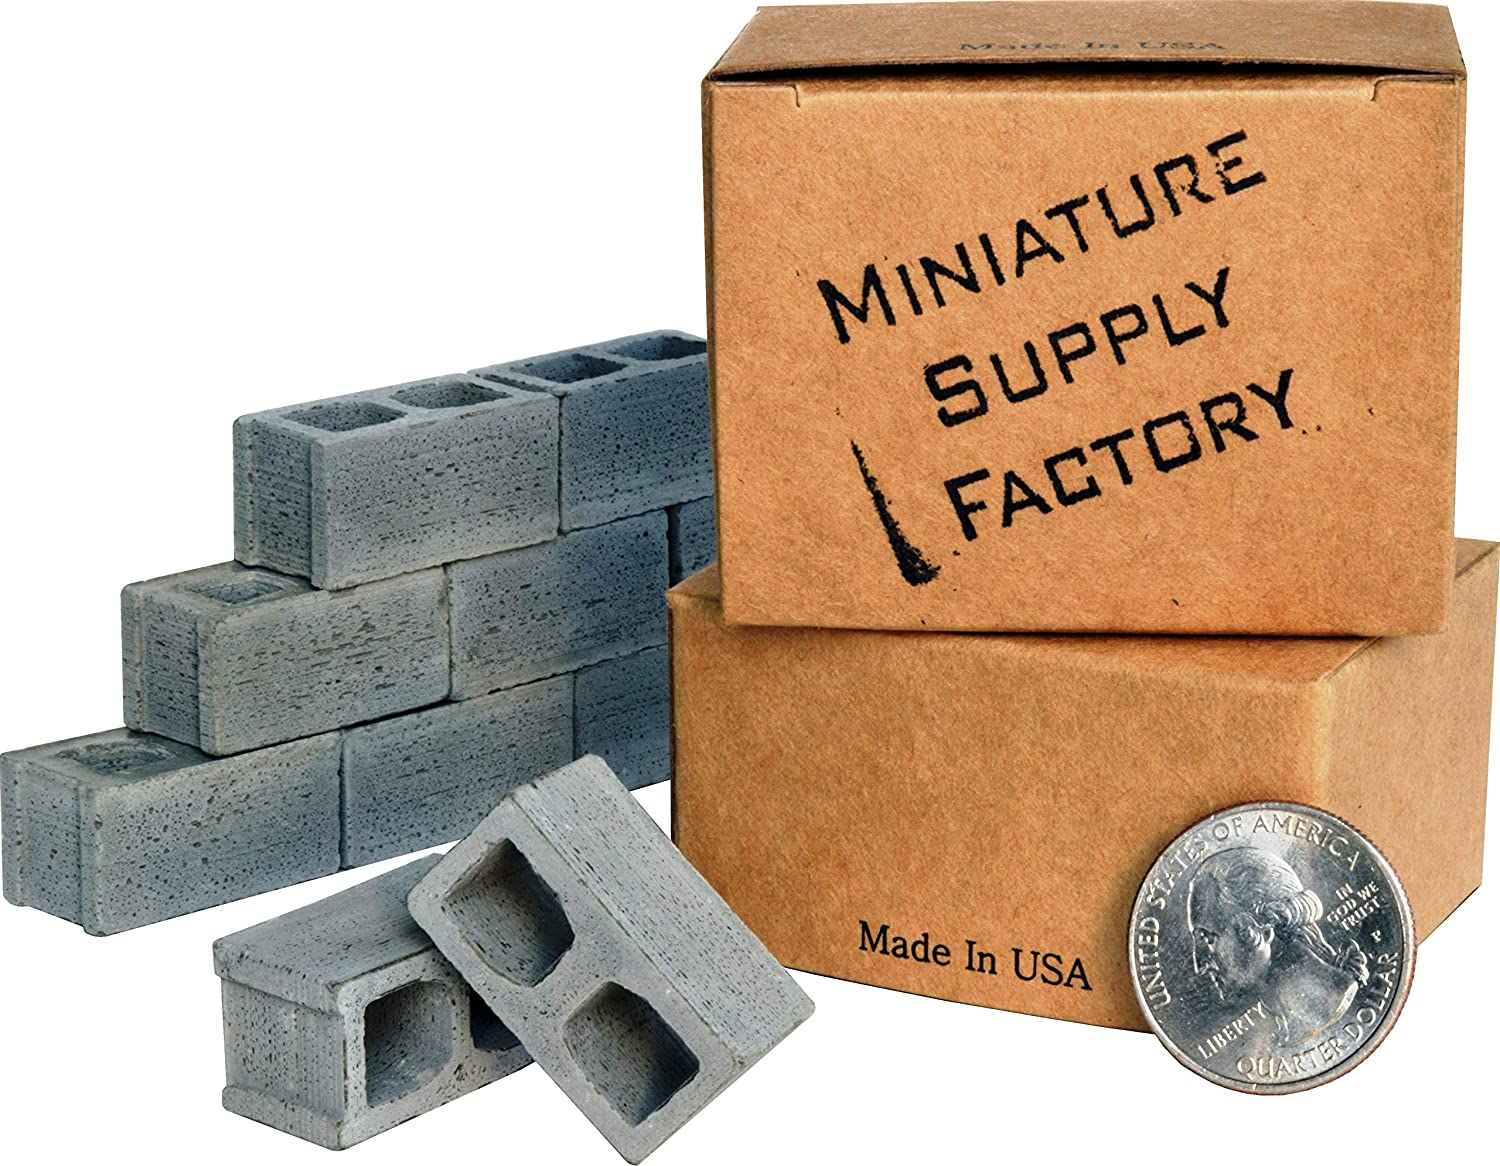 1/12 Scale Mini Cinder Blocks (24 Pack) Premium Quality – Handmade in USA. Miniature Concrete Bricks. Cool Gadgets or Gag Gift for Men, Teens, Your Desk